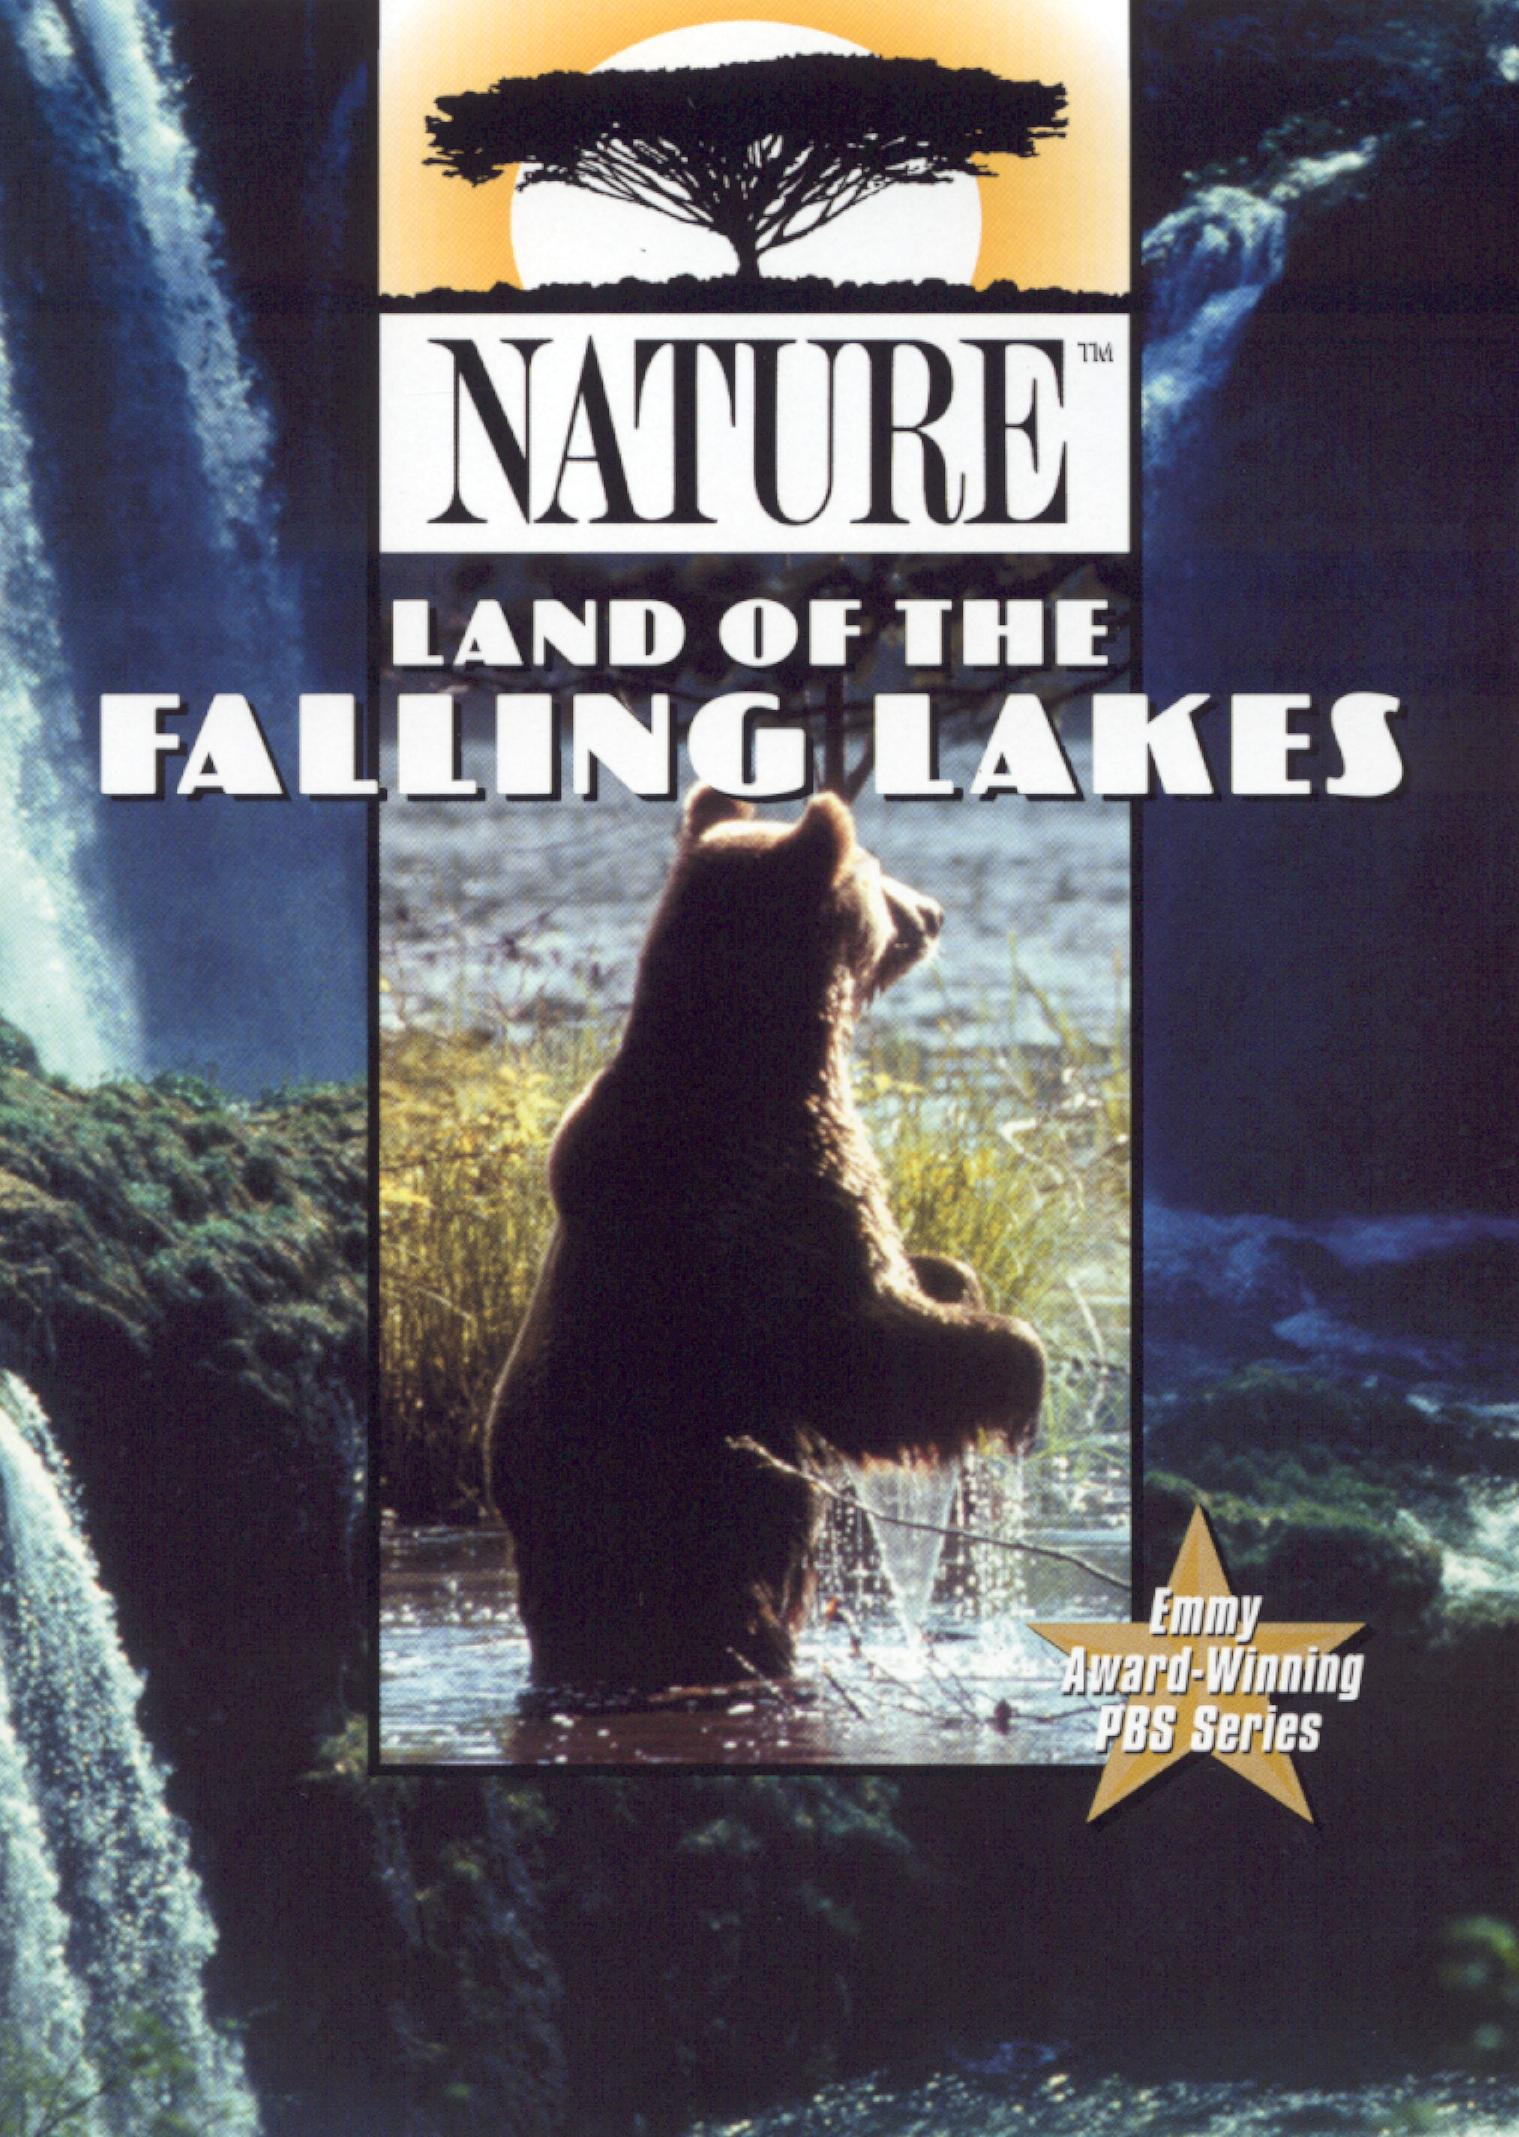 Nature: Land of the Falling Lakes